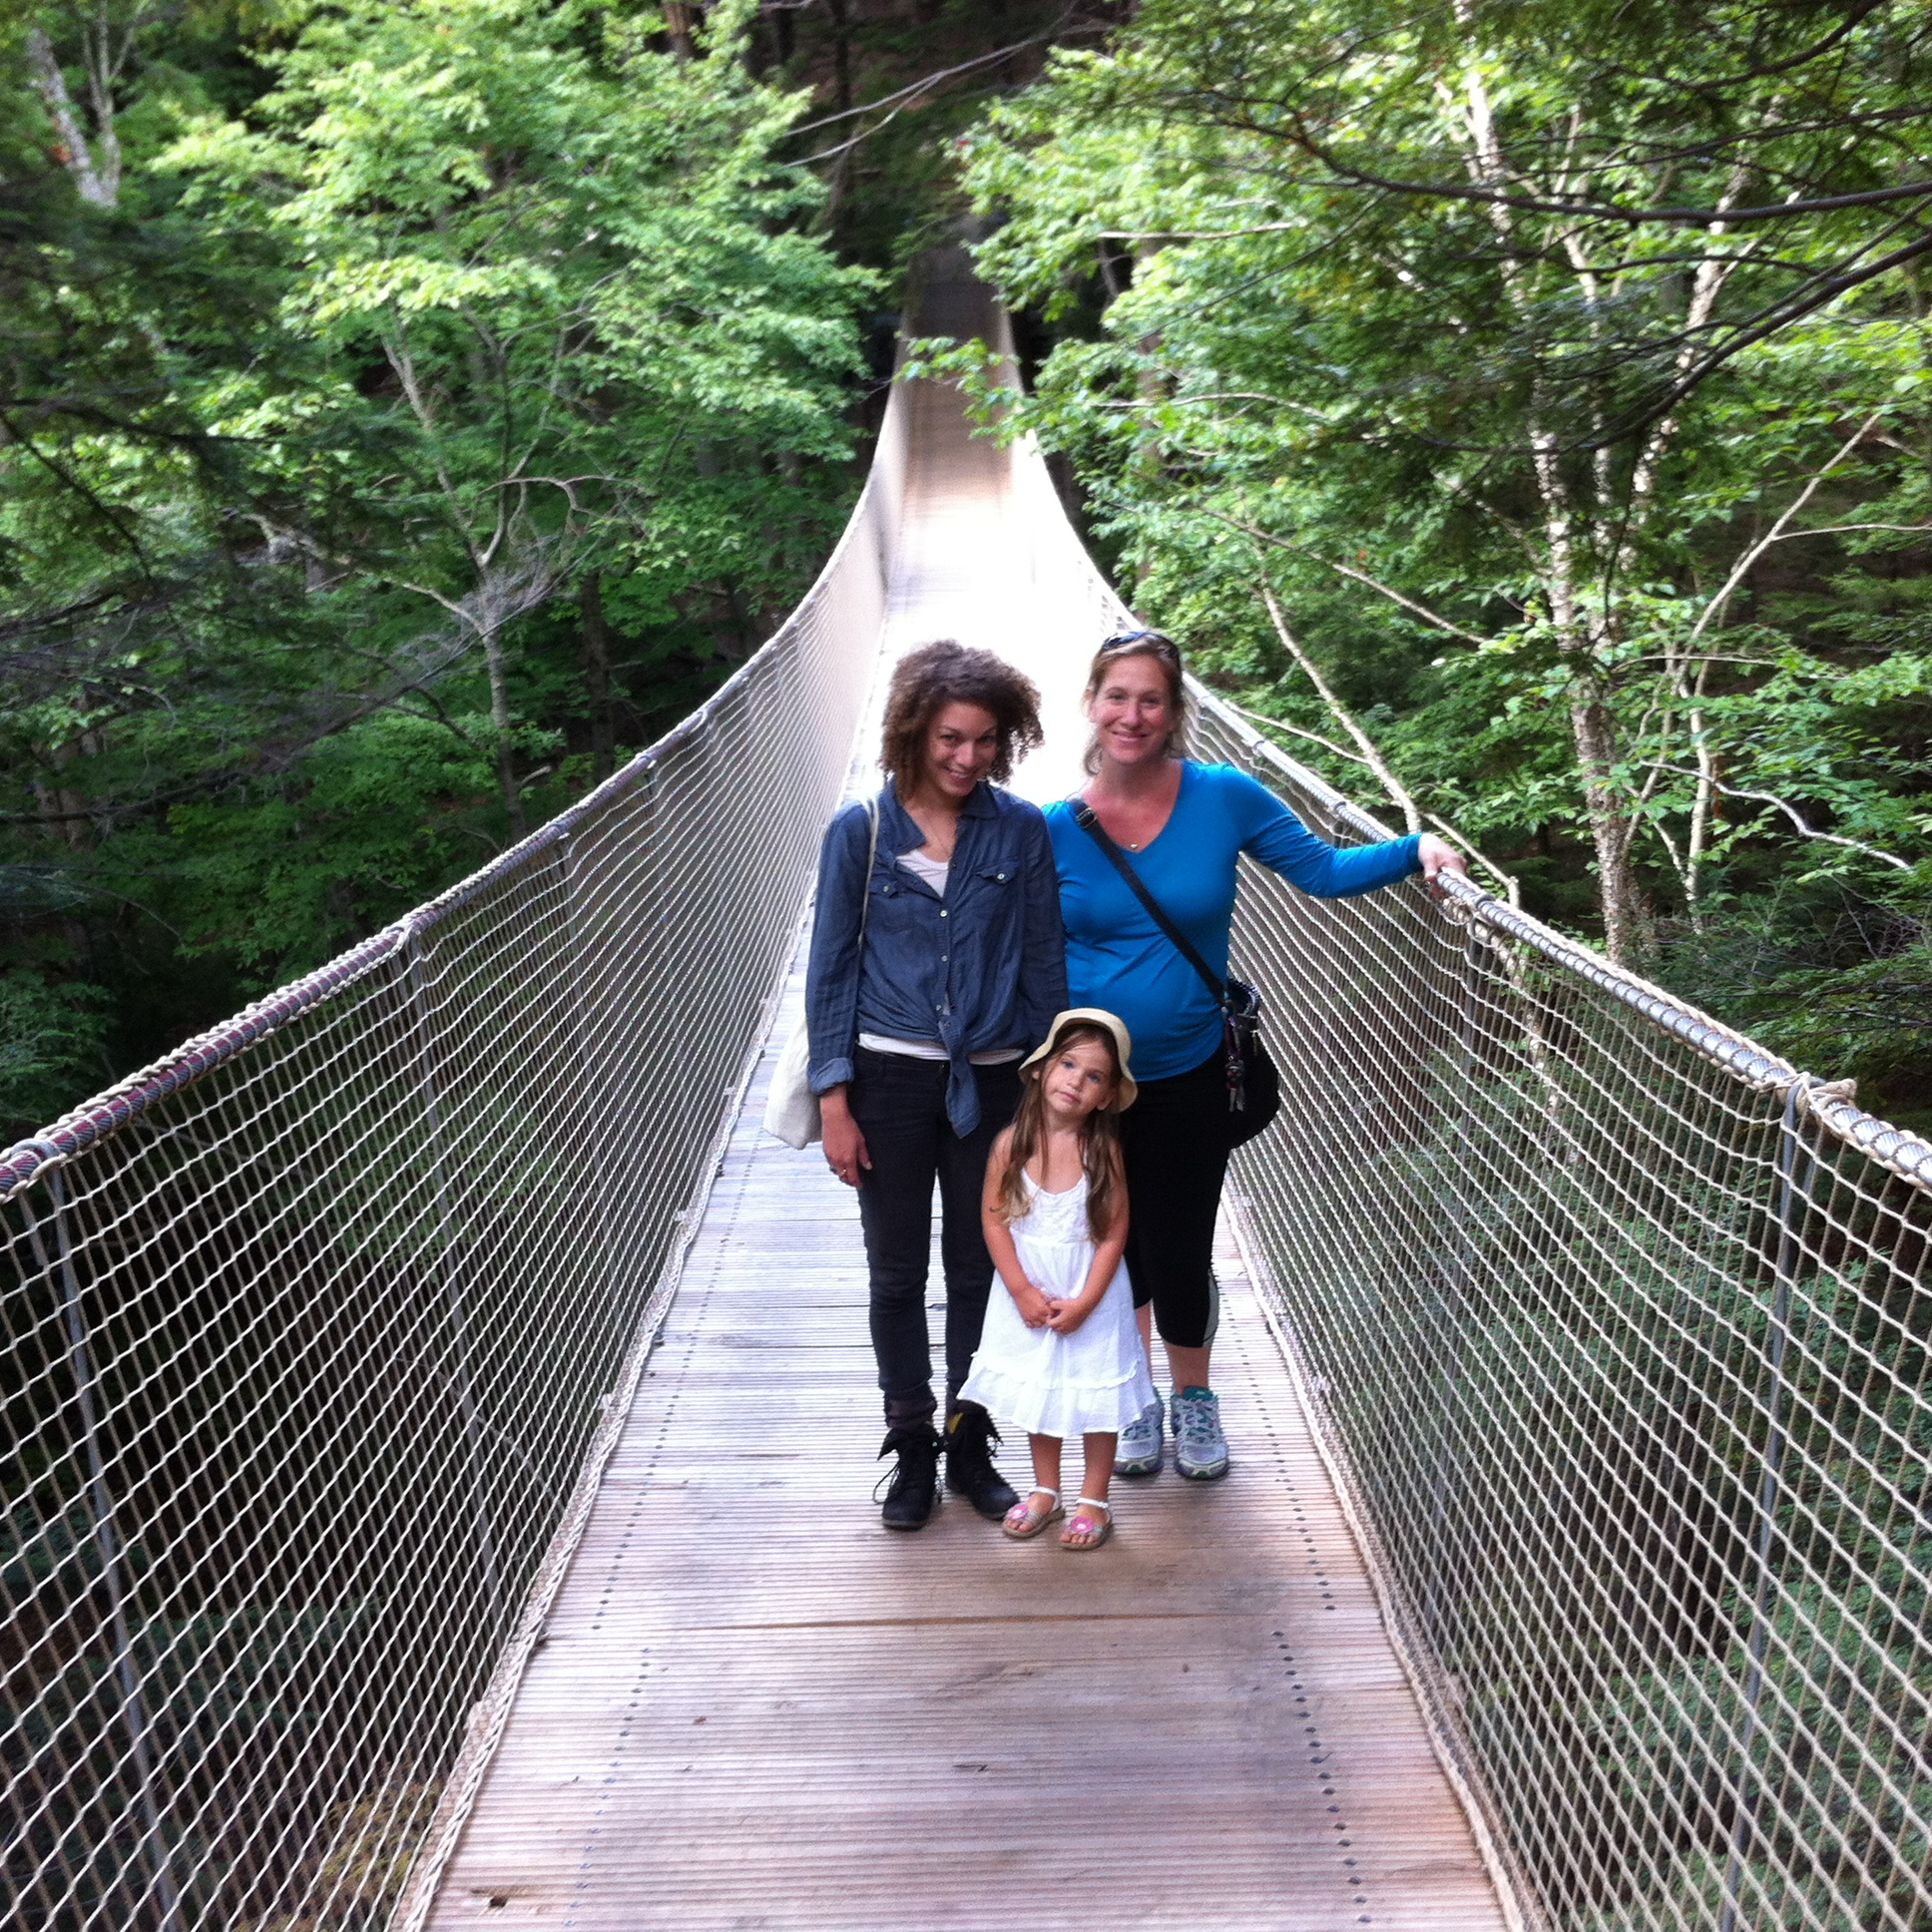 Having trouble getting out for some exercise on your own? Invite friends and family. Make your next outing a walk someplace lovely. Everyone will benefit and you will get your heart pumping.